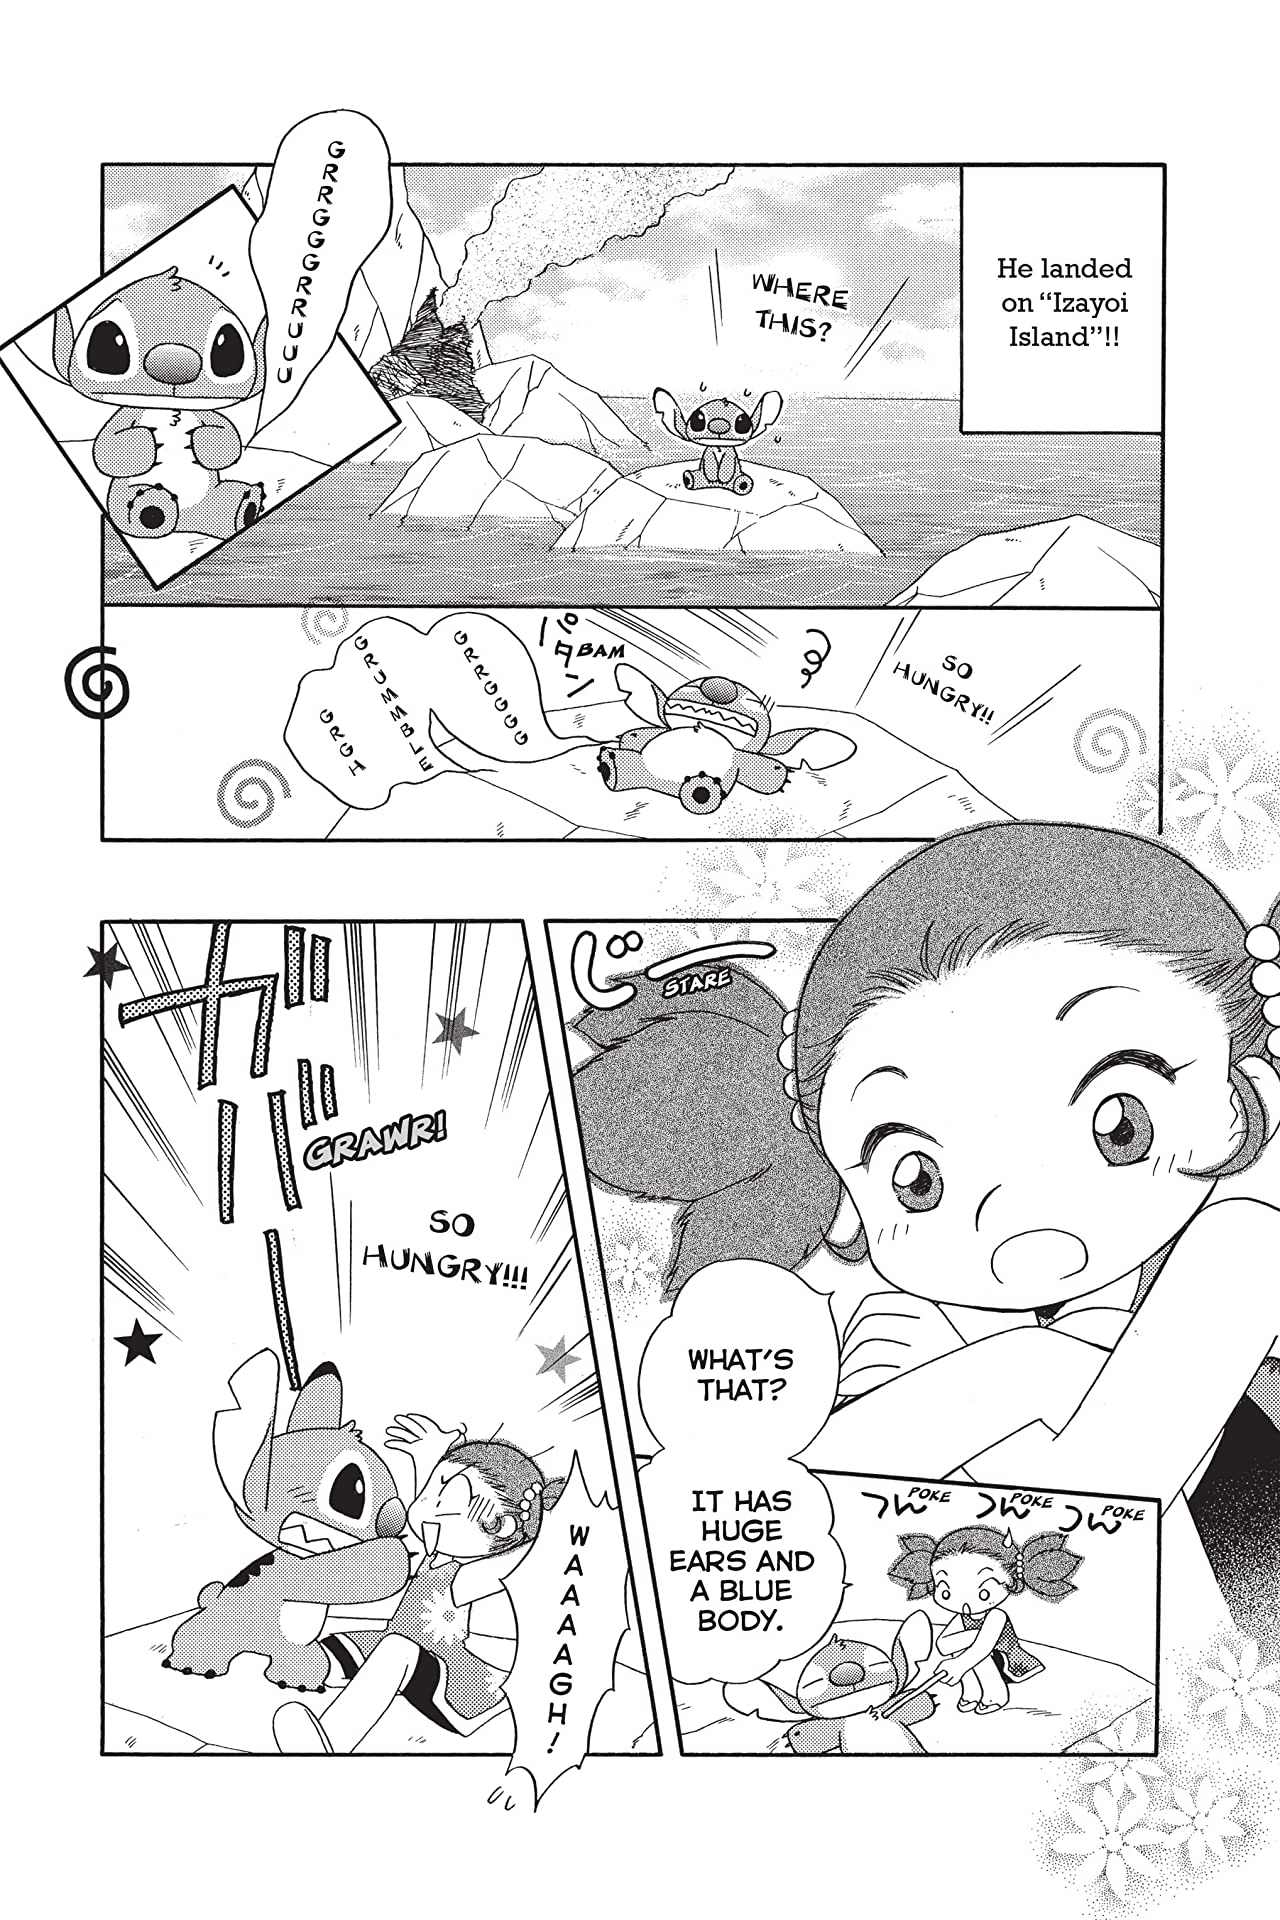 Disney Manga: Stitch! Vol. 1